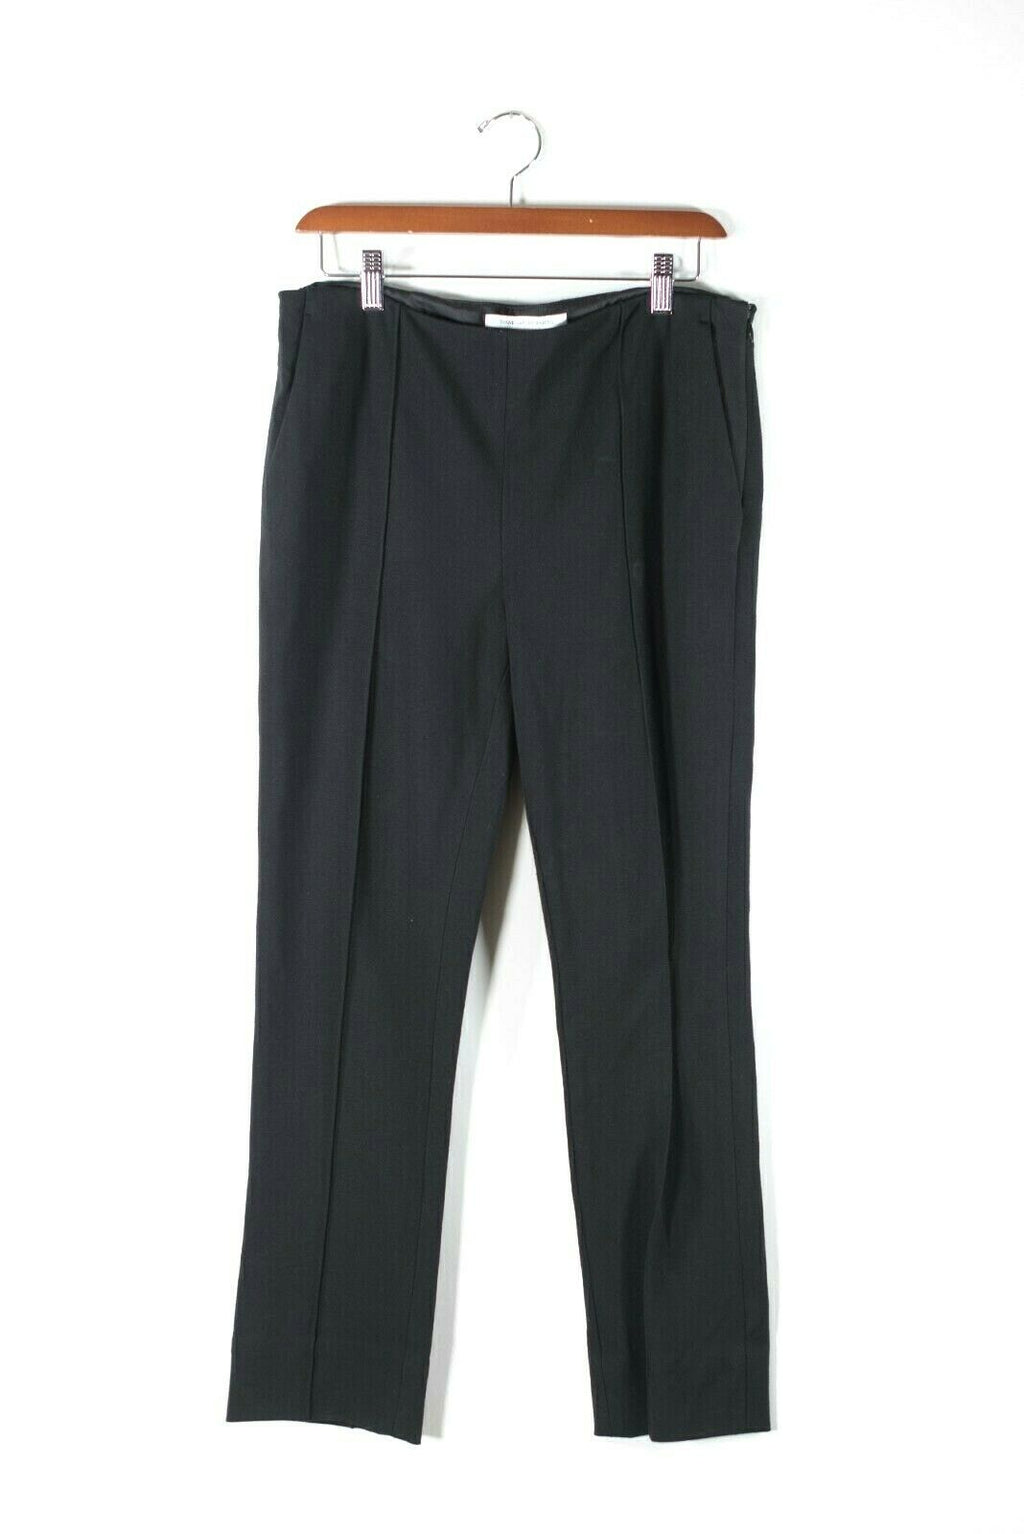 Diane von Furstenberg DVF Womens Size 8 Medium Black Pants Stretchy Trousers